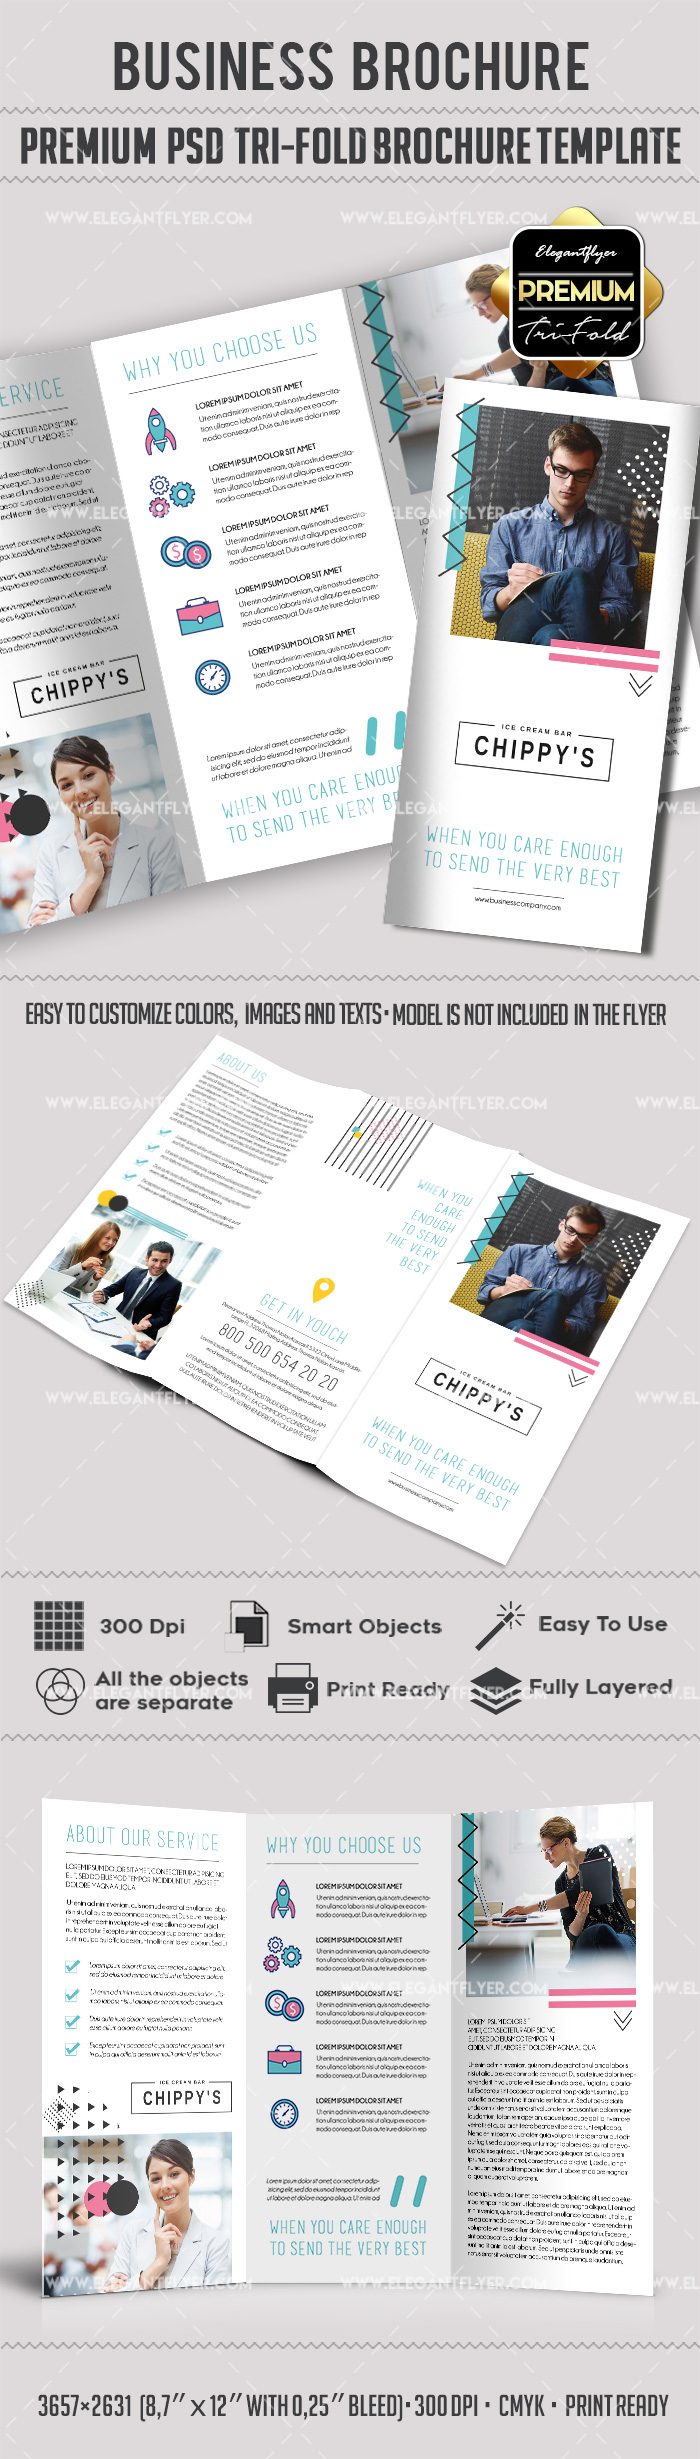 Brochure for Business Template